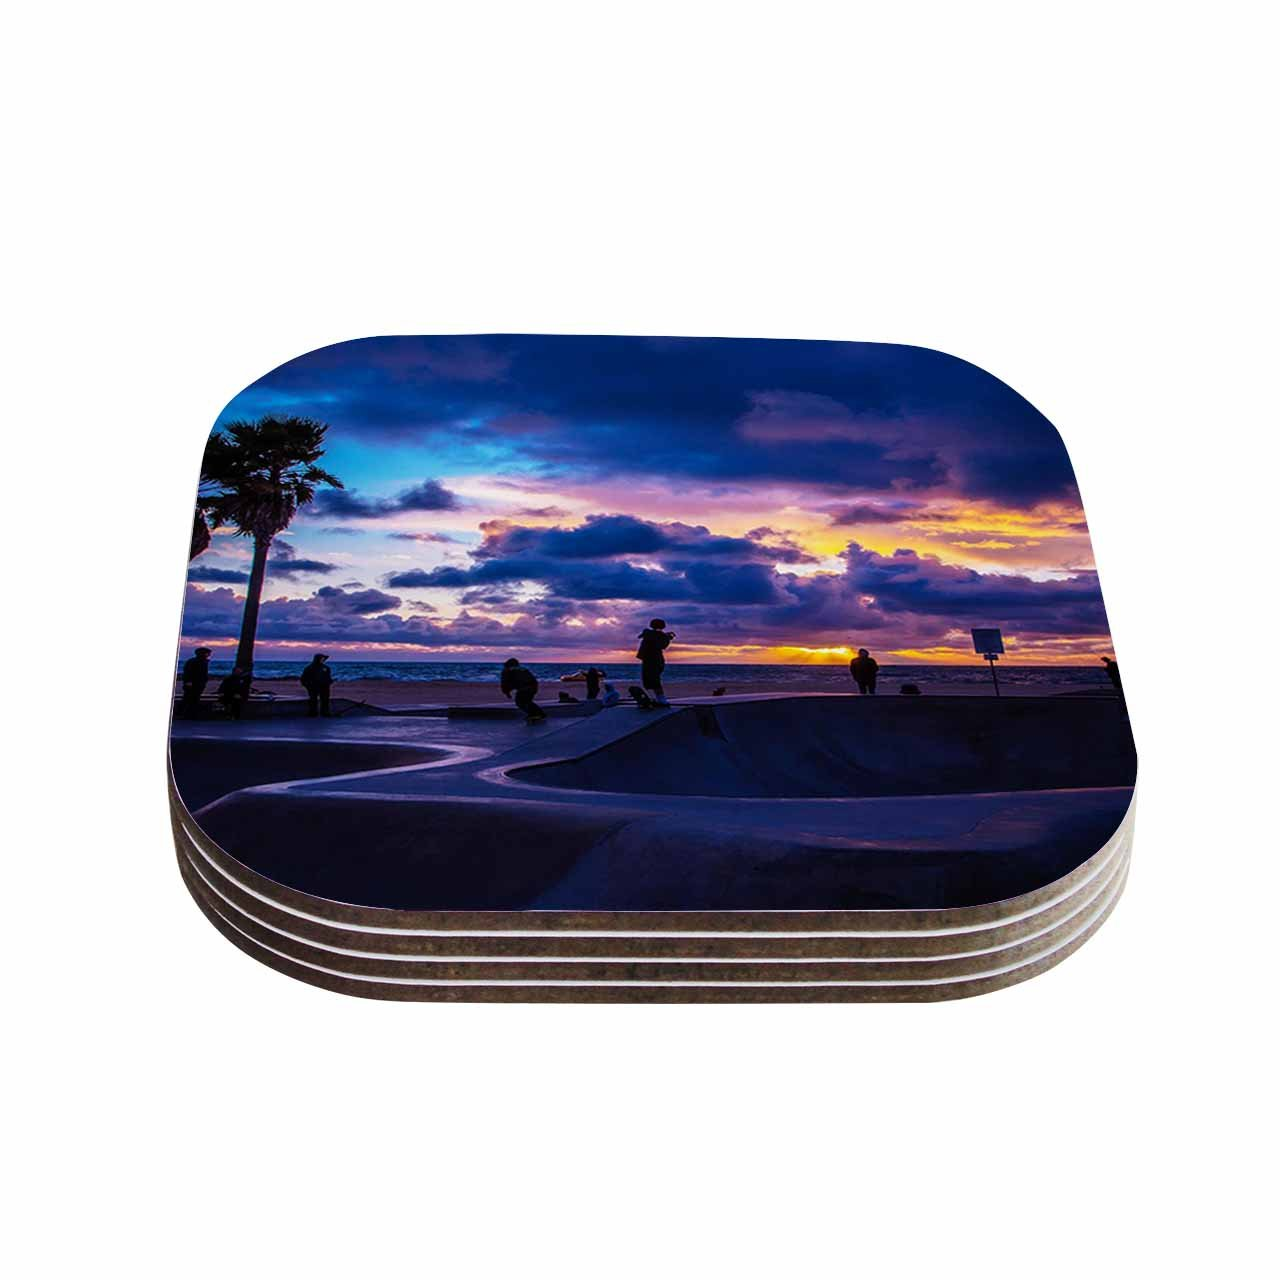 KESS InHouse Juan Paolo'Dog town' Blue Coasters (Set of 4), 4 x 4', Multicolor